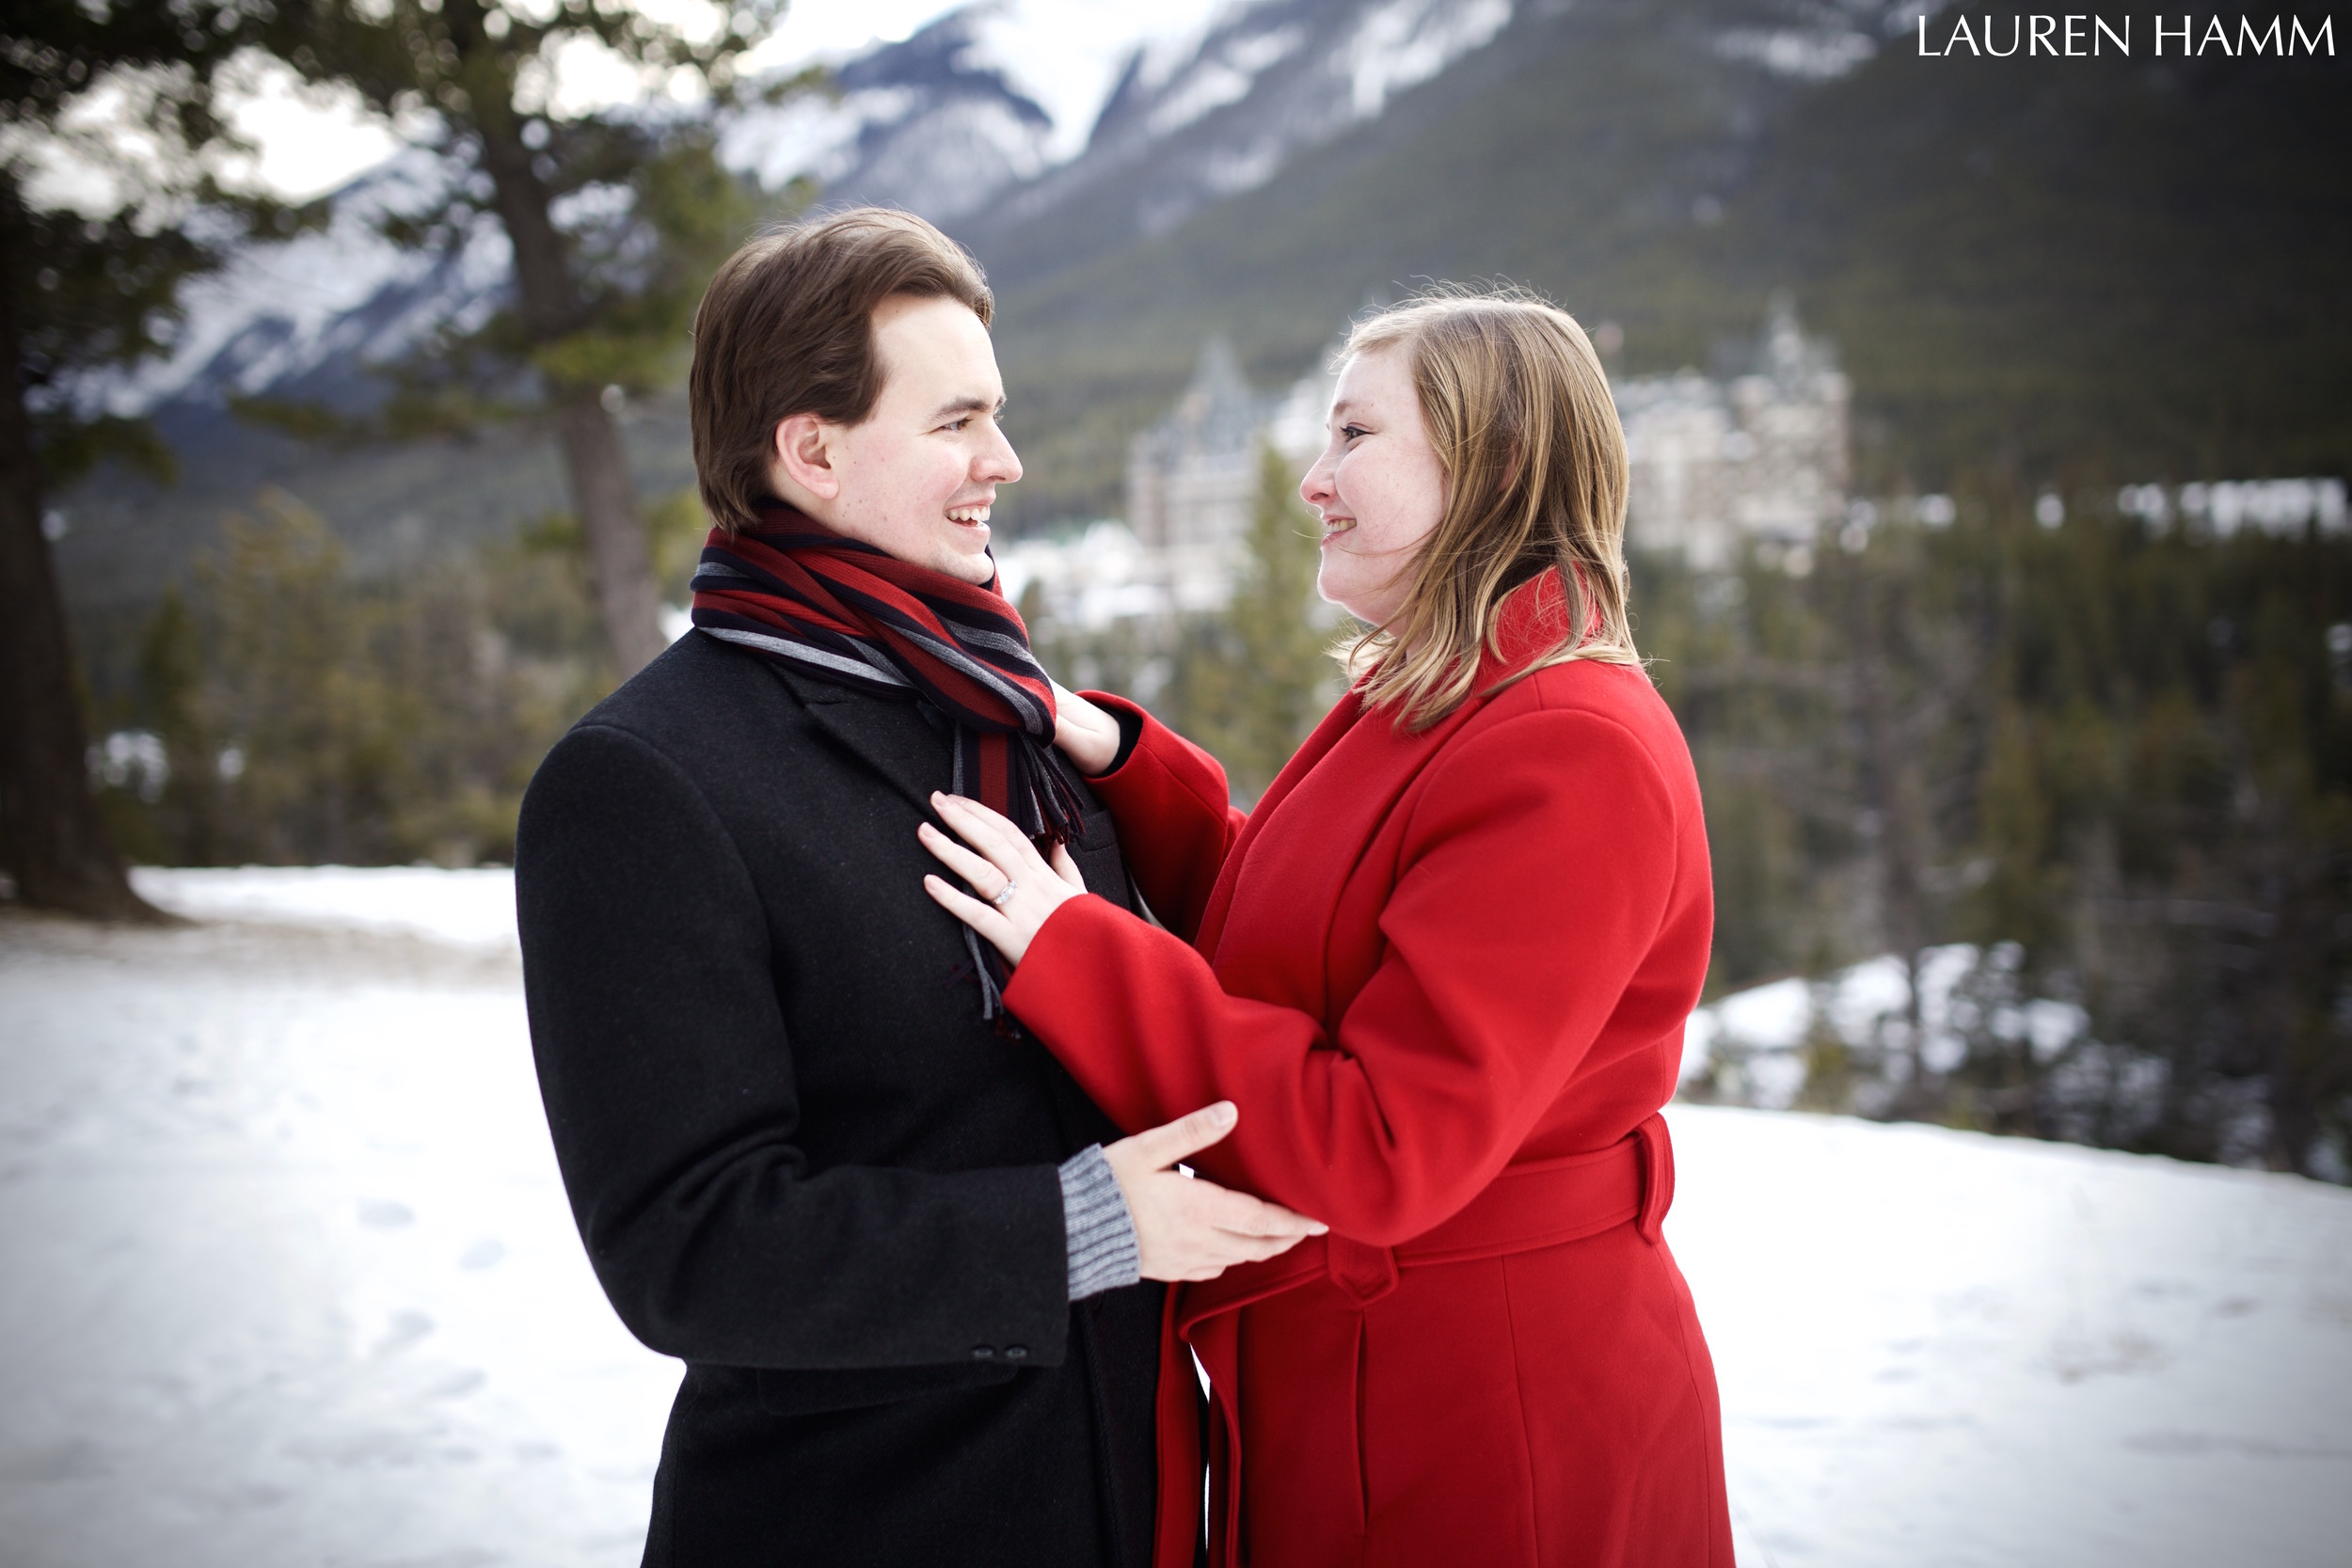 Kevin and Emily | Engagement | Lifestyle Photography| Calgary Engagement | Calgary Photographer | Alberta Photographer | YYC | Lauren Hamm Photography